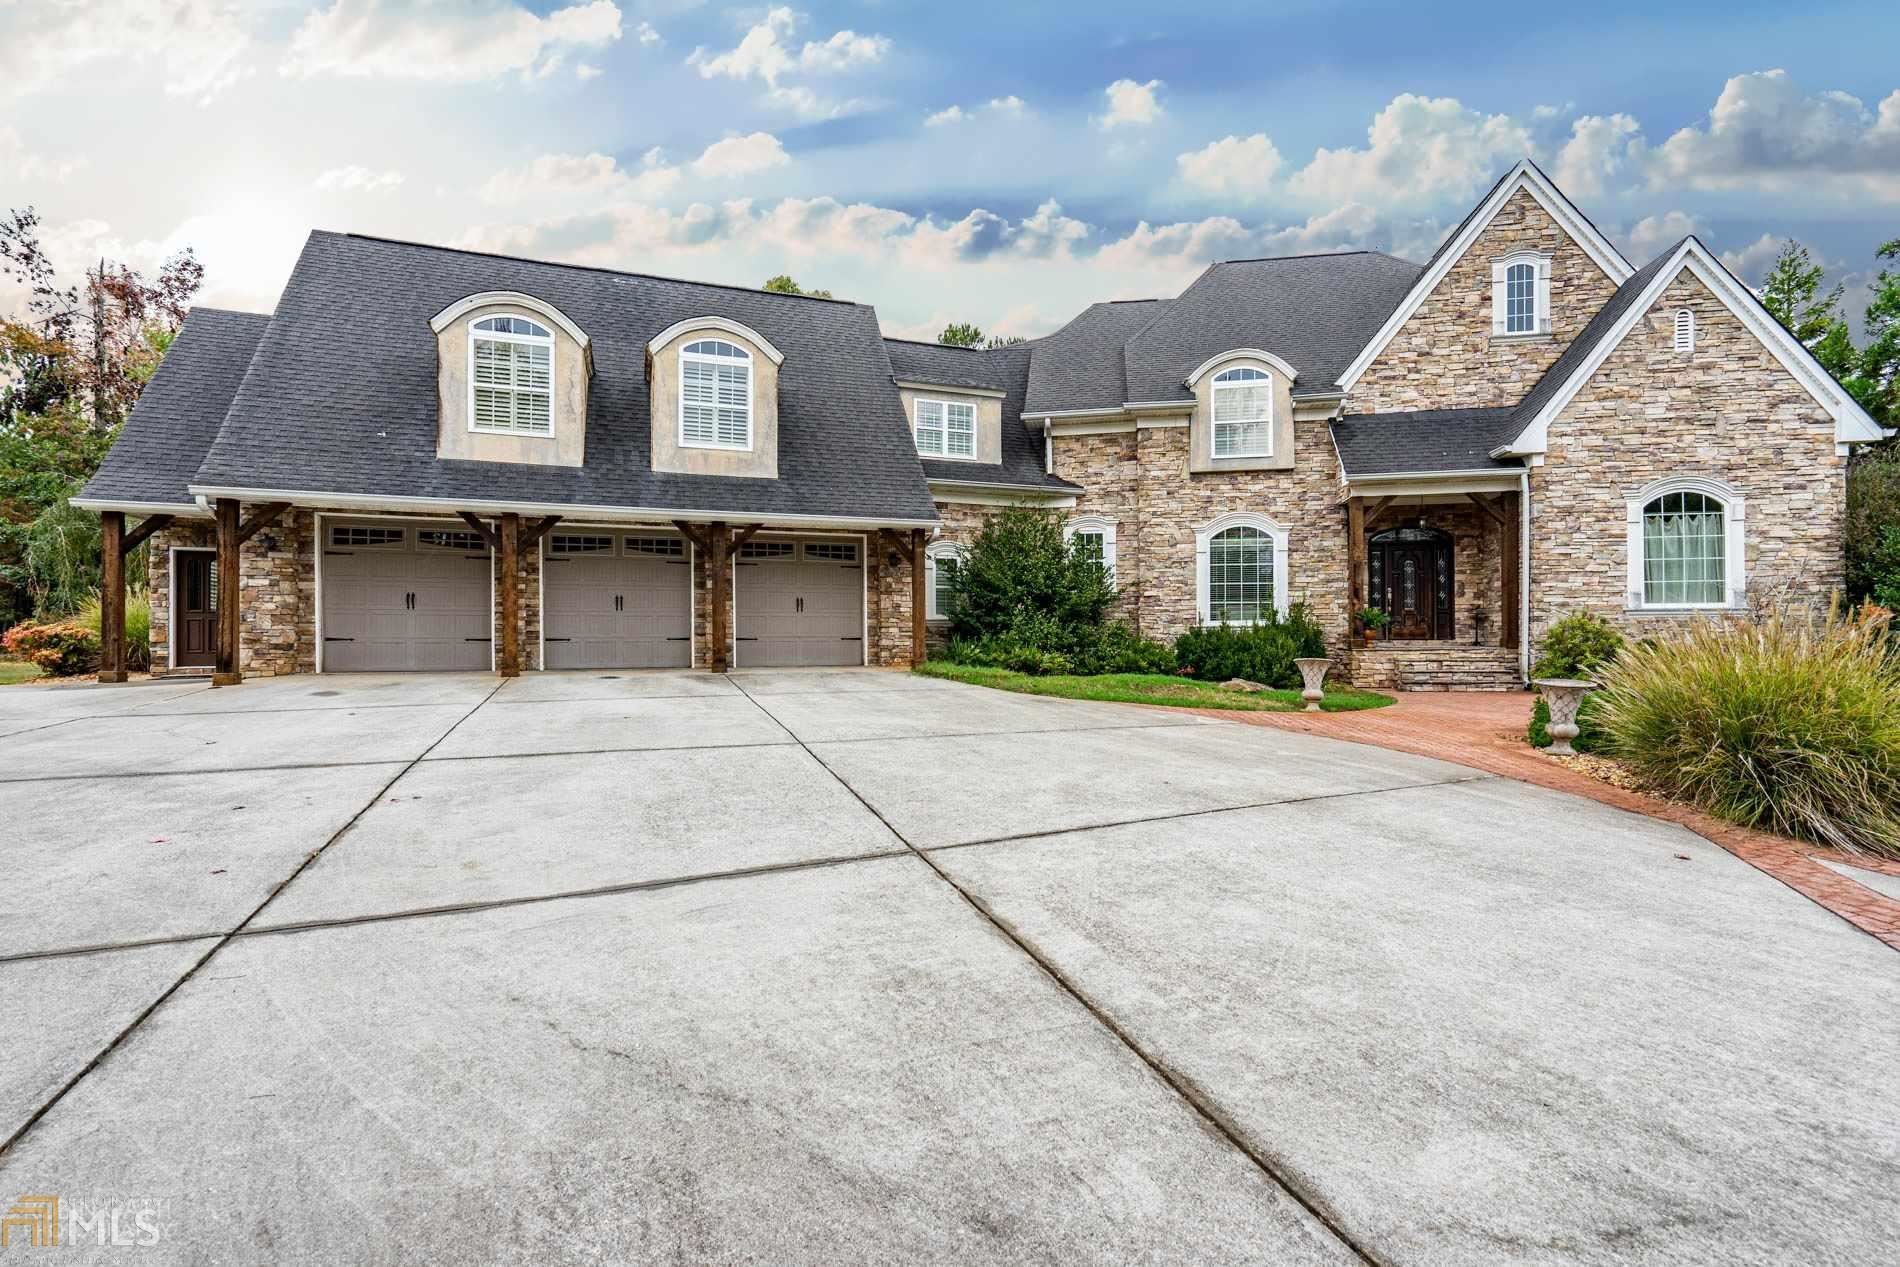 100 Fox Ct, Forsyth, GA 31029 - #: 8819620